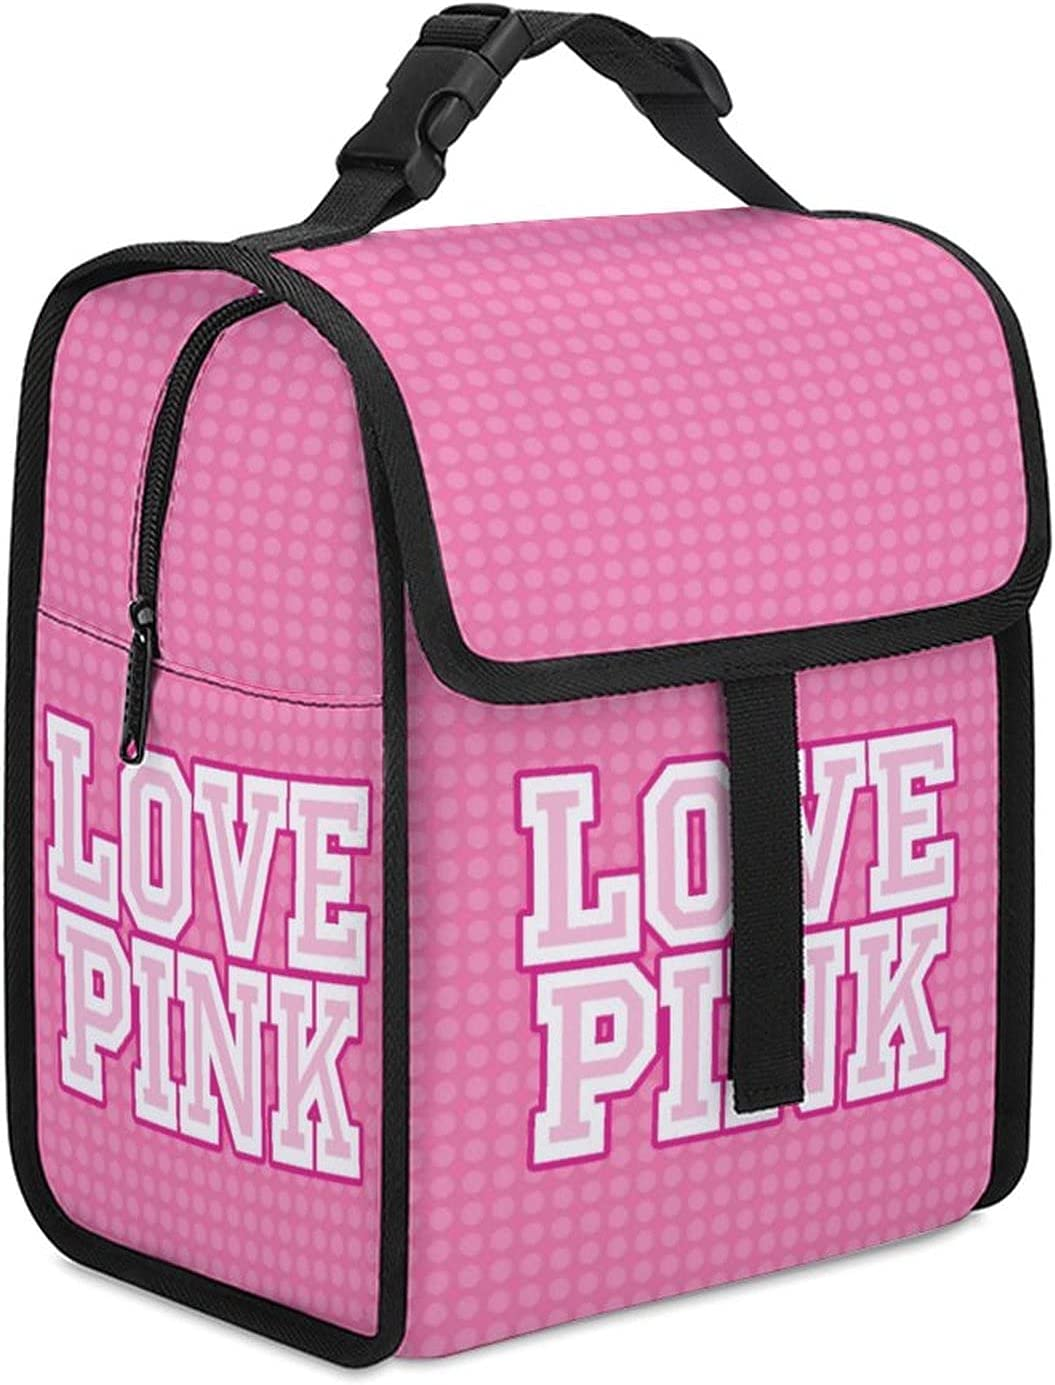 9L Love Pink Lunch Bag,Lunch Boxes Portable Reusable Lunch Boxes Meal Prep Handbag Beach Cooler Bag for Women/Men,Insulated Lunch Box Bag for Office Work Beach Picnic